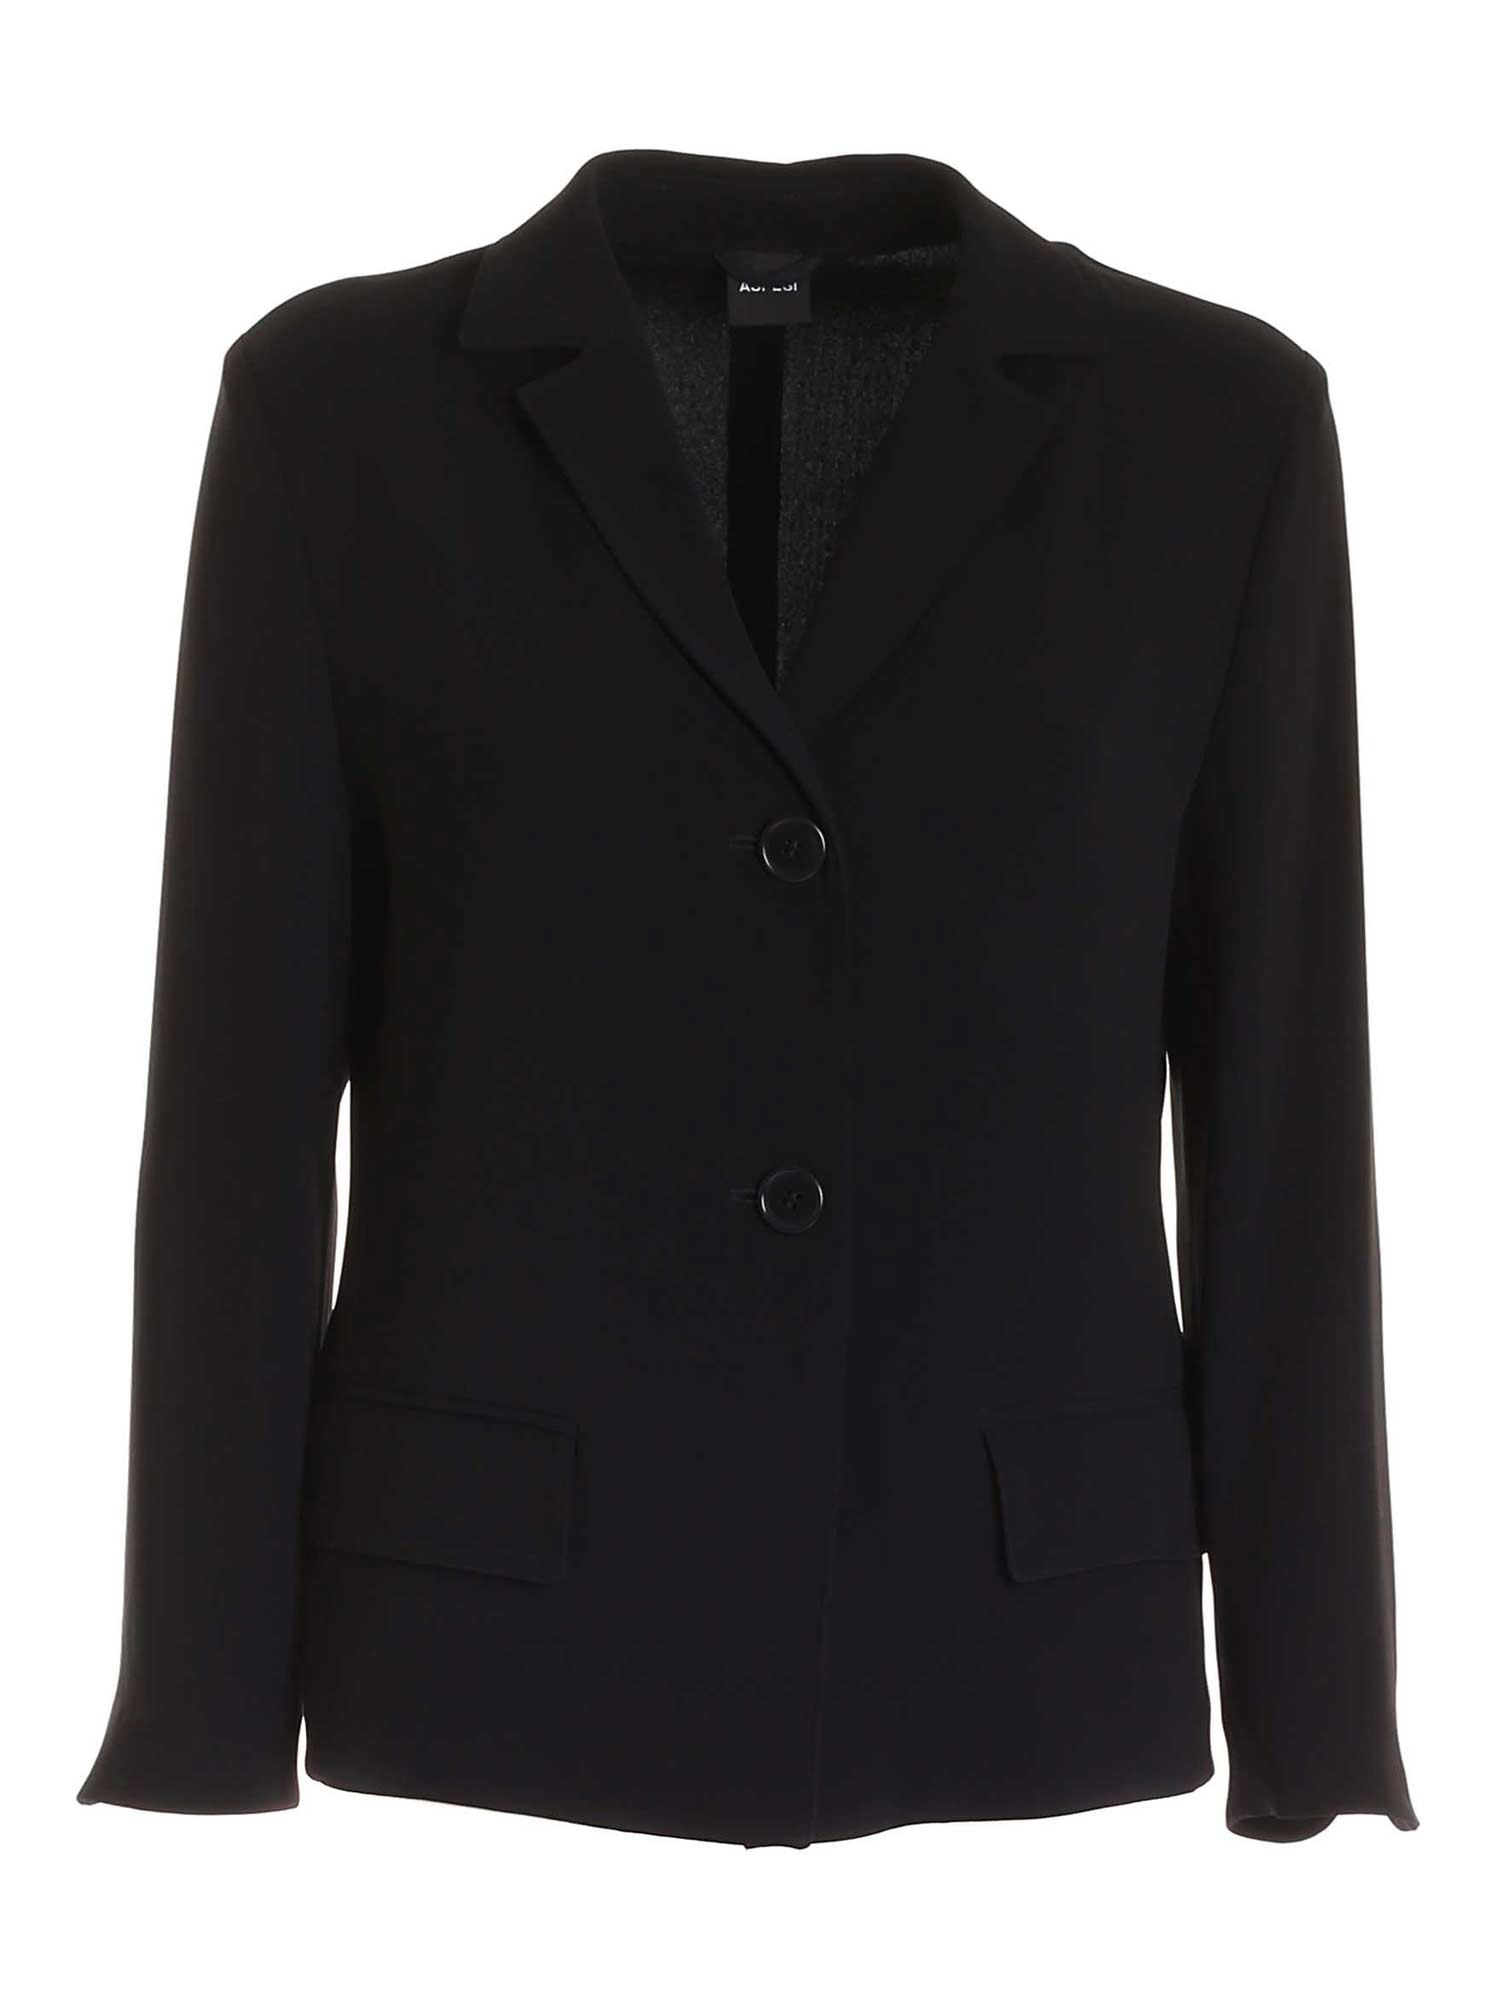 Aspesi SINGLE-BREASTED JACKET IN BLACK